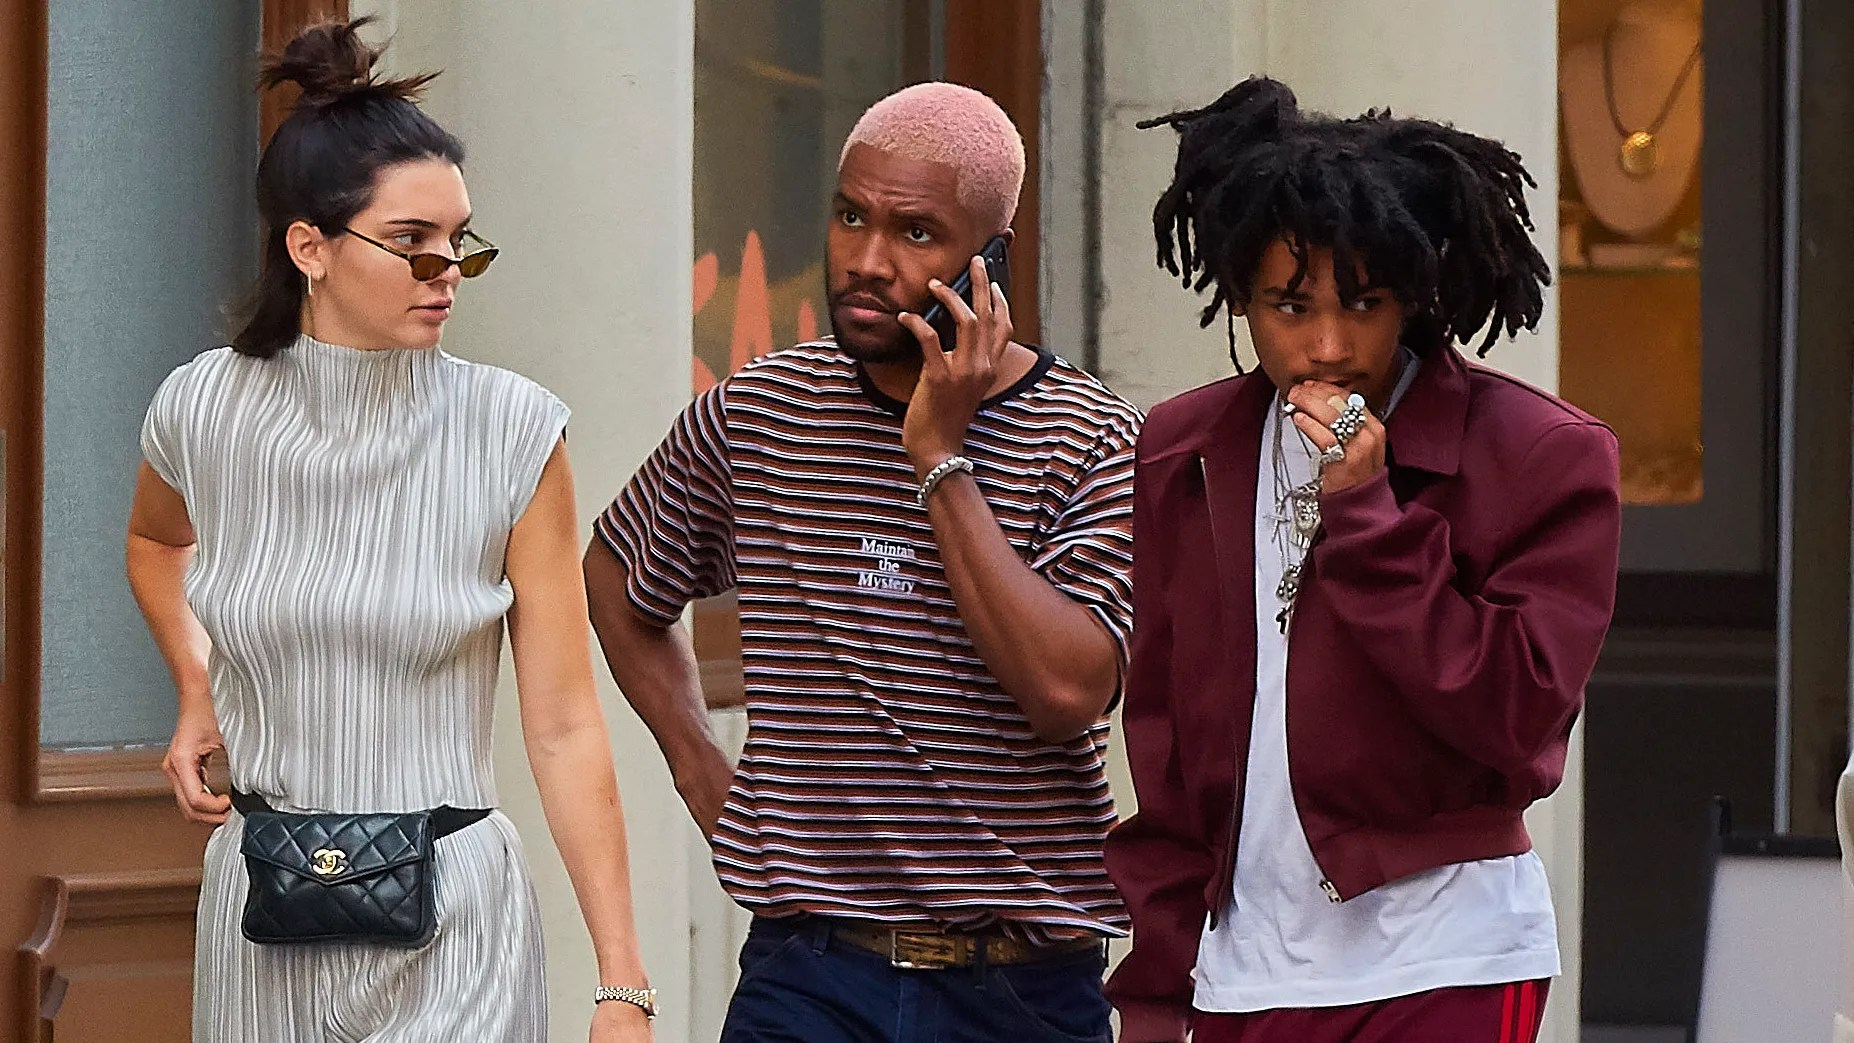 Frank Oceans Pink Hair Is Already Summers Defining Style